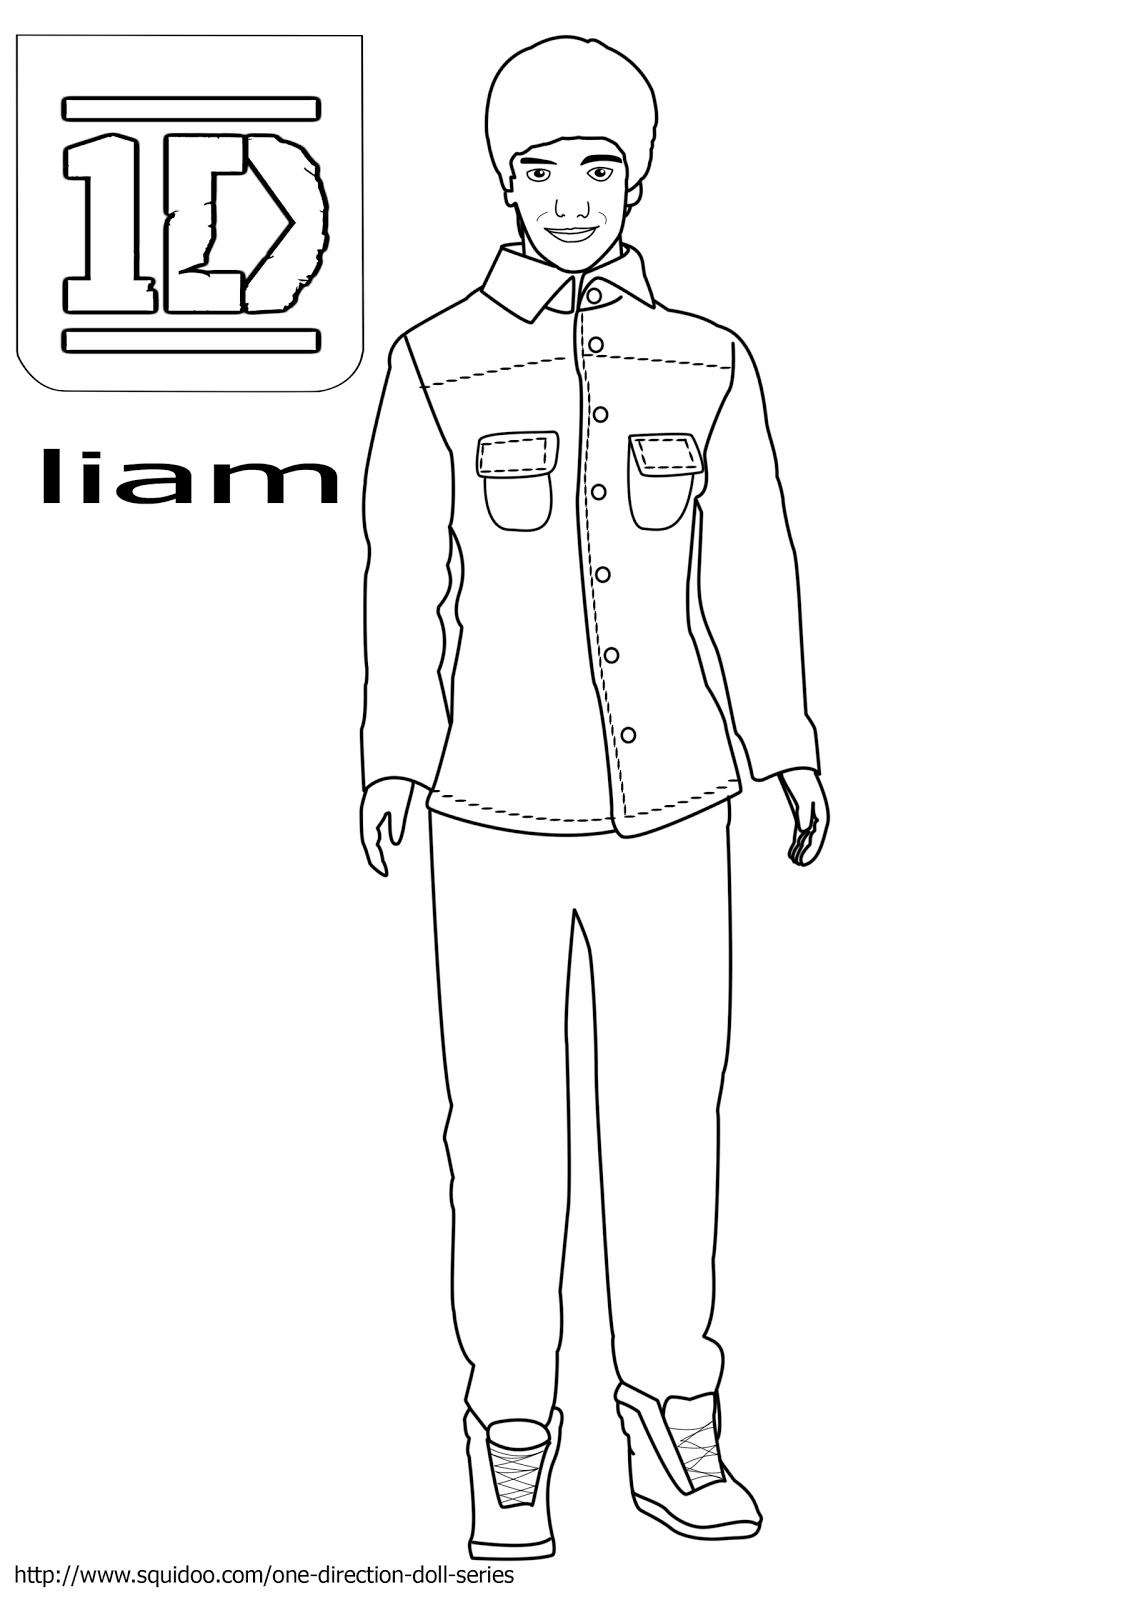 one direction coloring pages liam payneone direction coloring pages niall